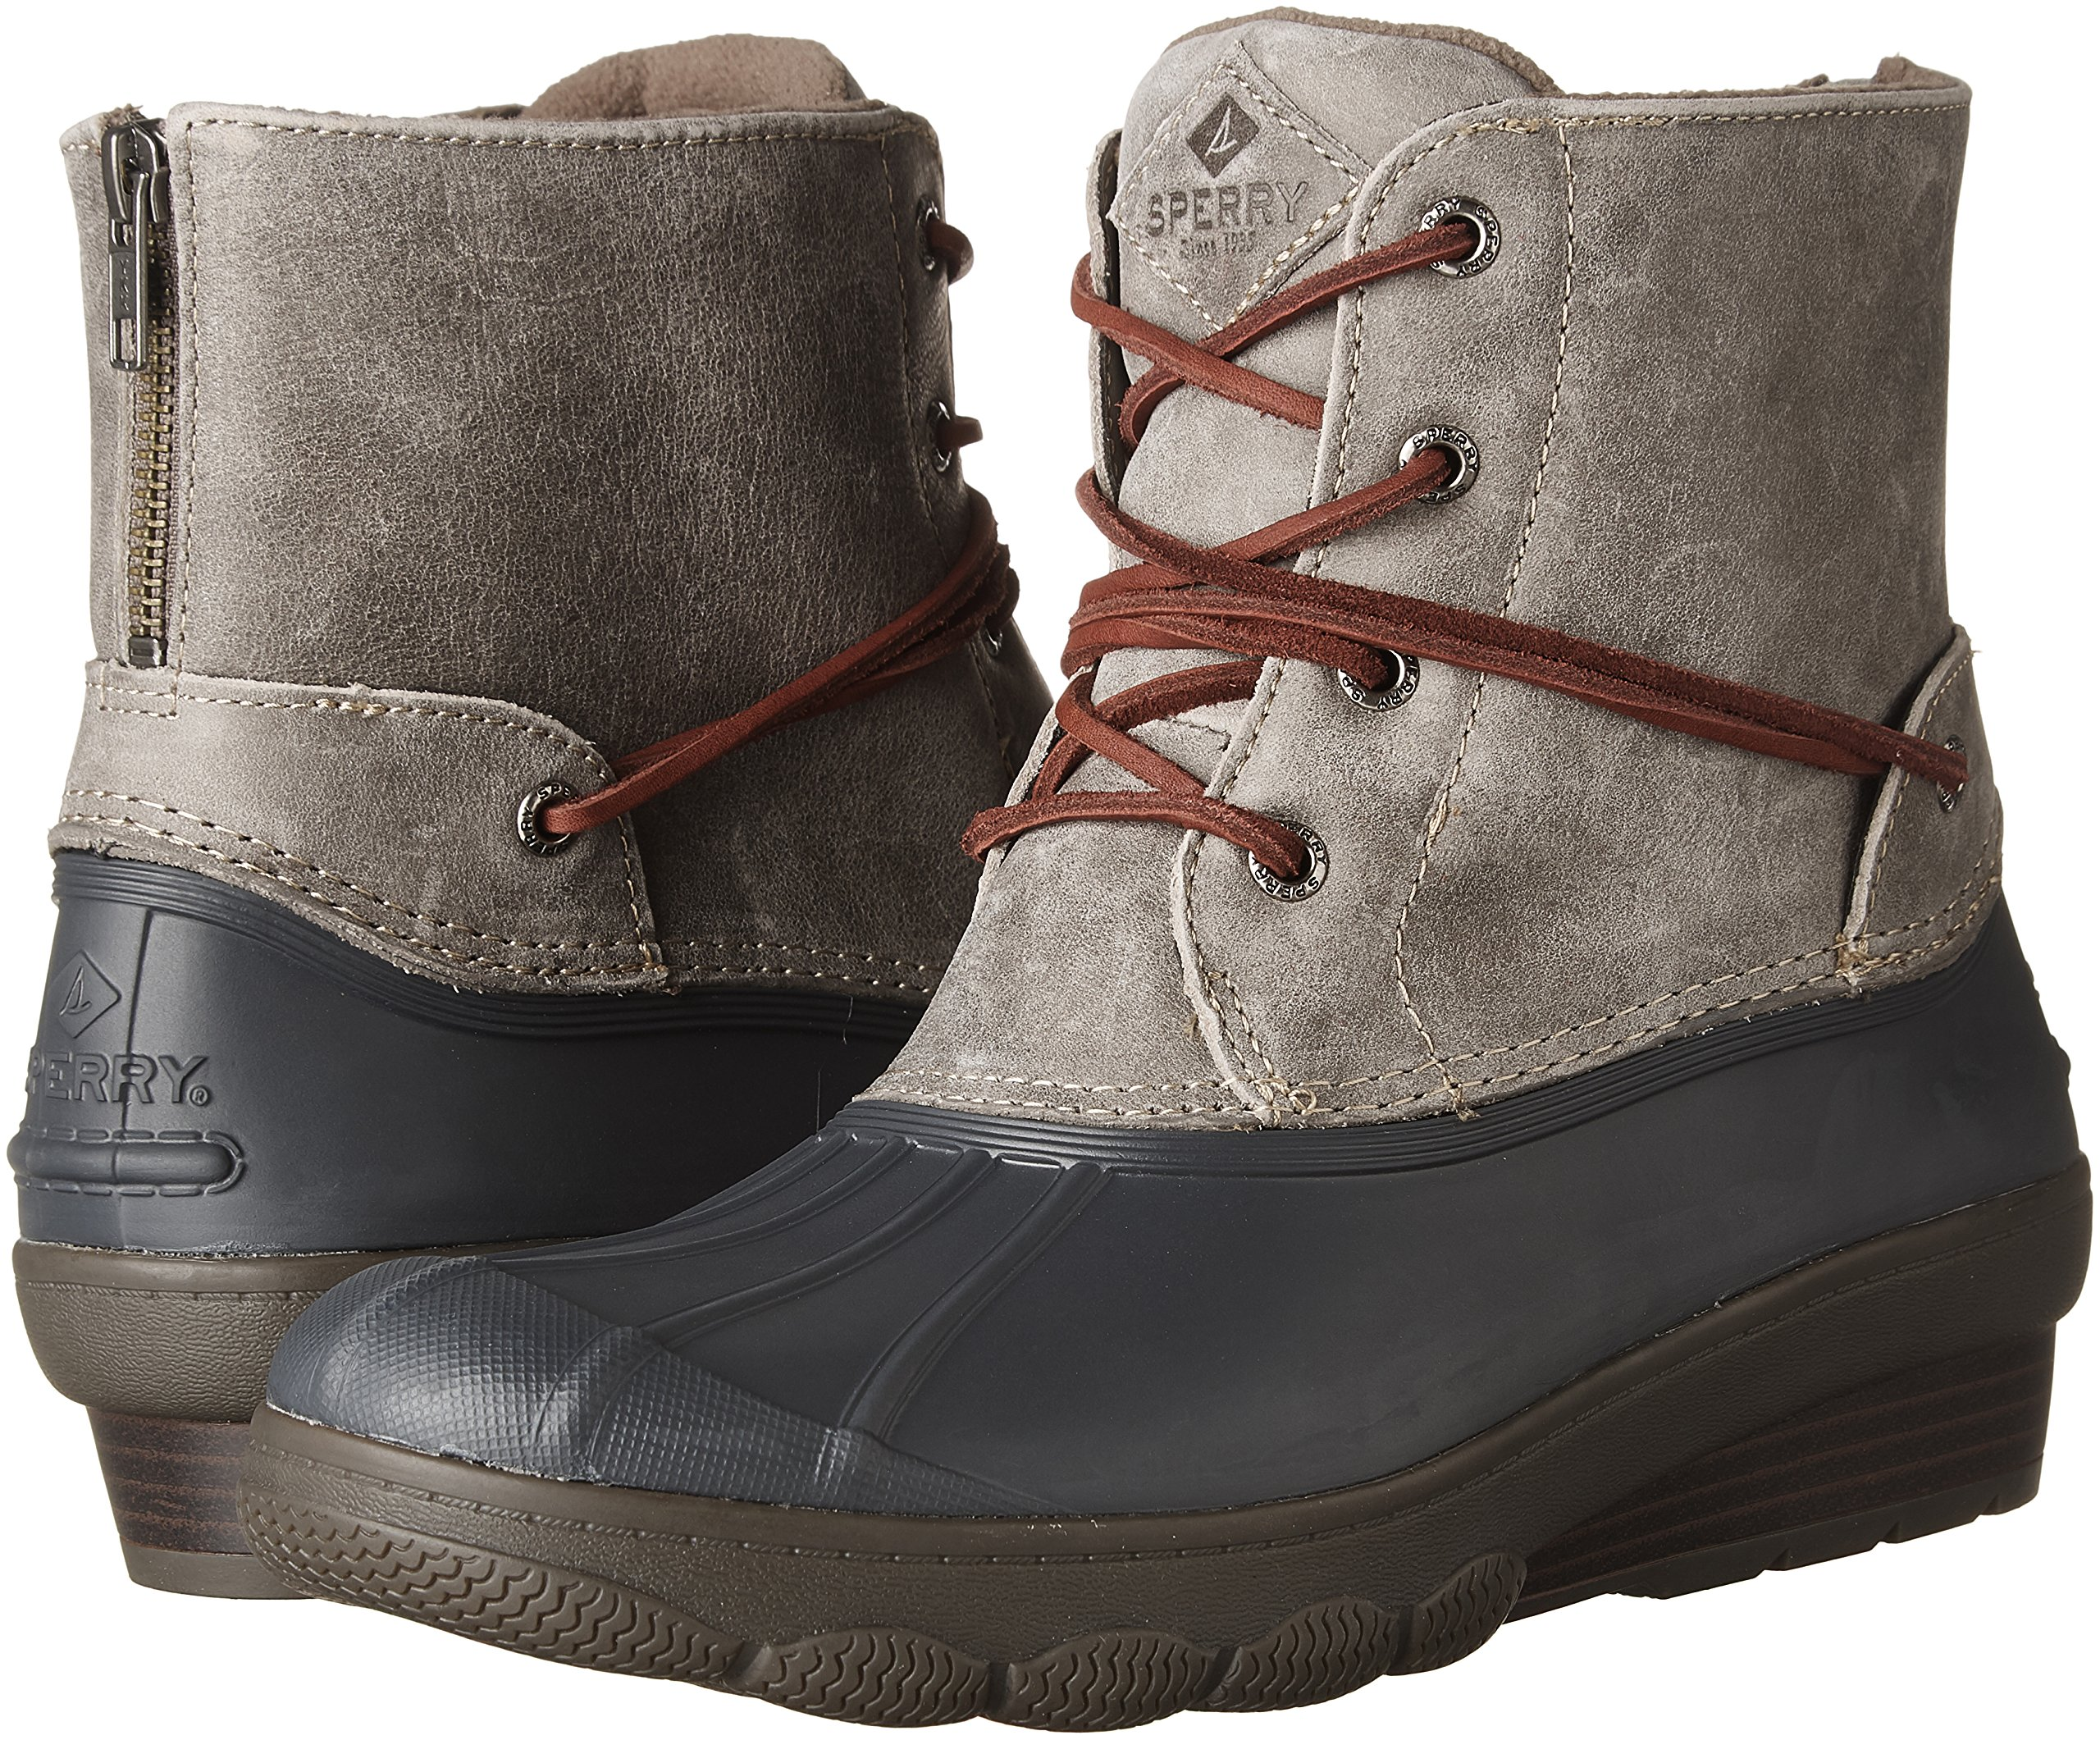 Sperry Top-Sider Women's Saltwater Wedge Tide Rain Boot, Grey, 8 Medium US by Sperry Top-Sider (Image #6)